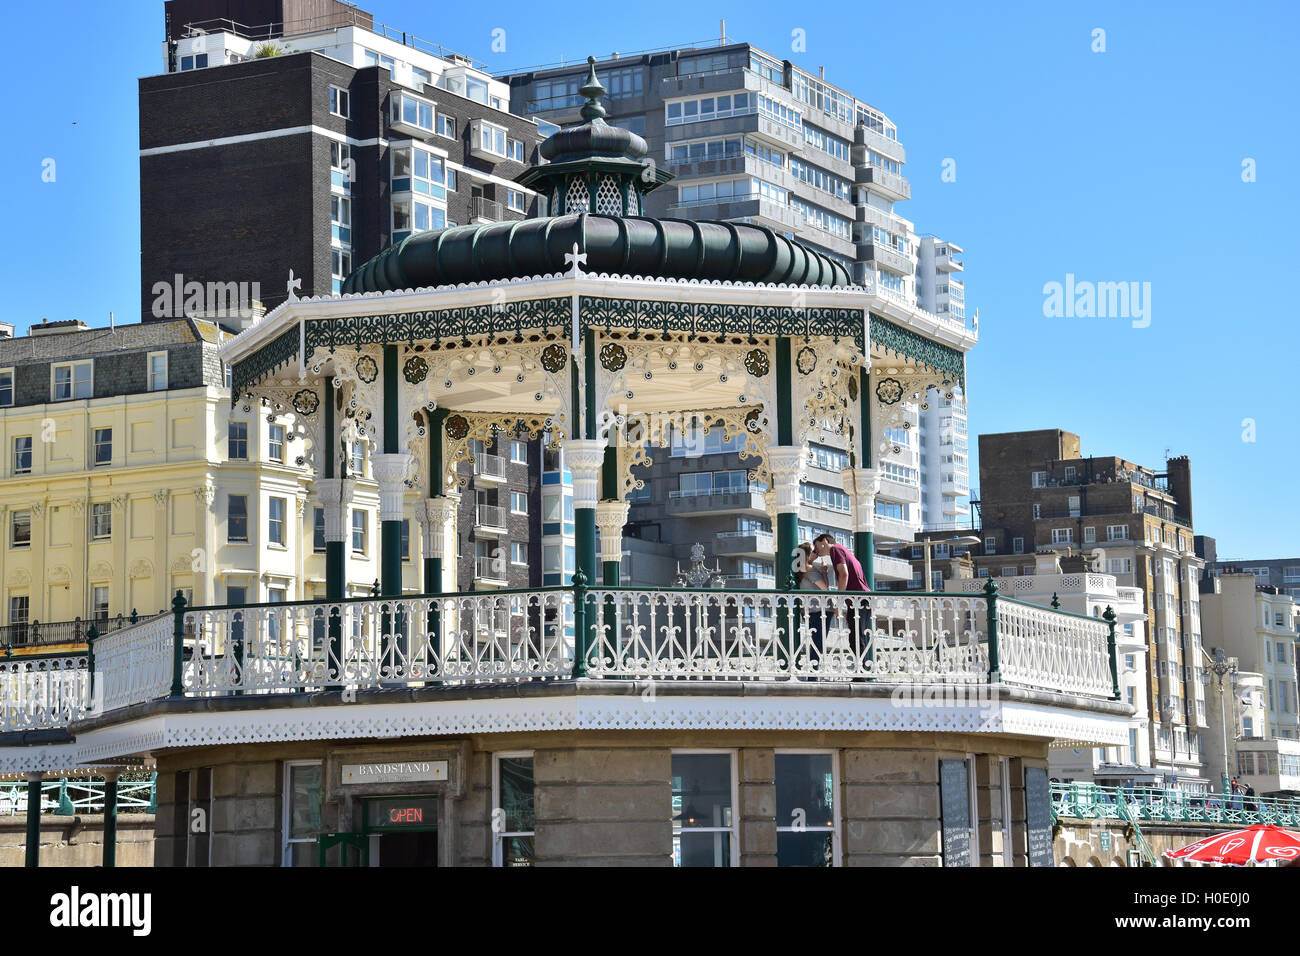 Couple kissing inside Brightons Bandstand - Stock Image